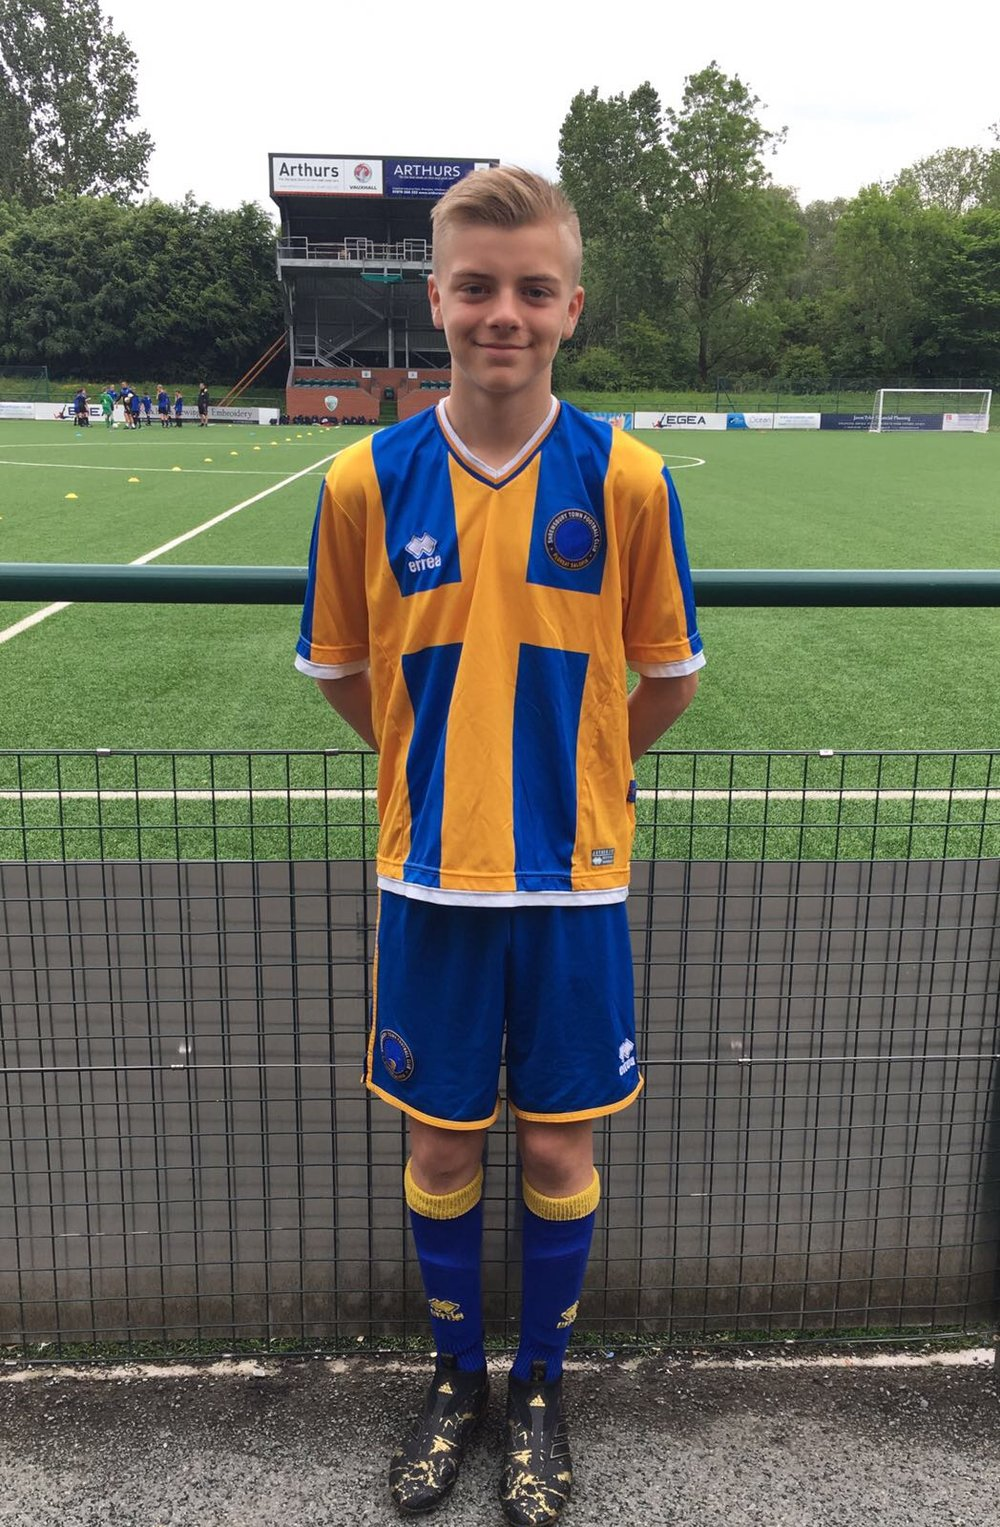 LUKE FLETCHER - AGE: 12CLUB: SHREWSBURY FCPOSITION: FORWARDSTARTED IPDA: 7TH JUNE 2016SIGNED FOR ACADEMY: 12TH MAY 2017